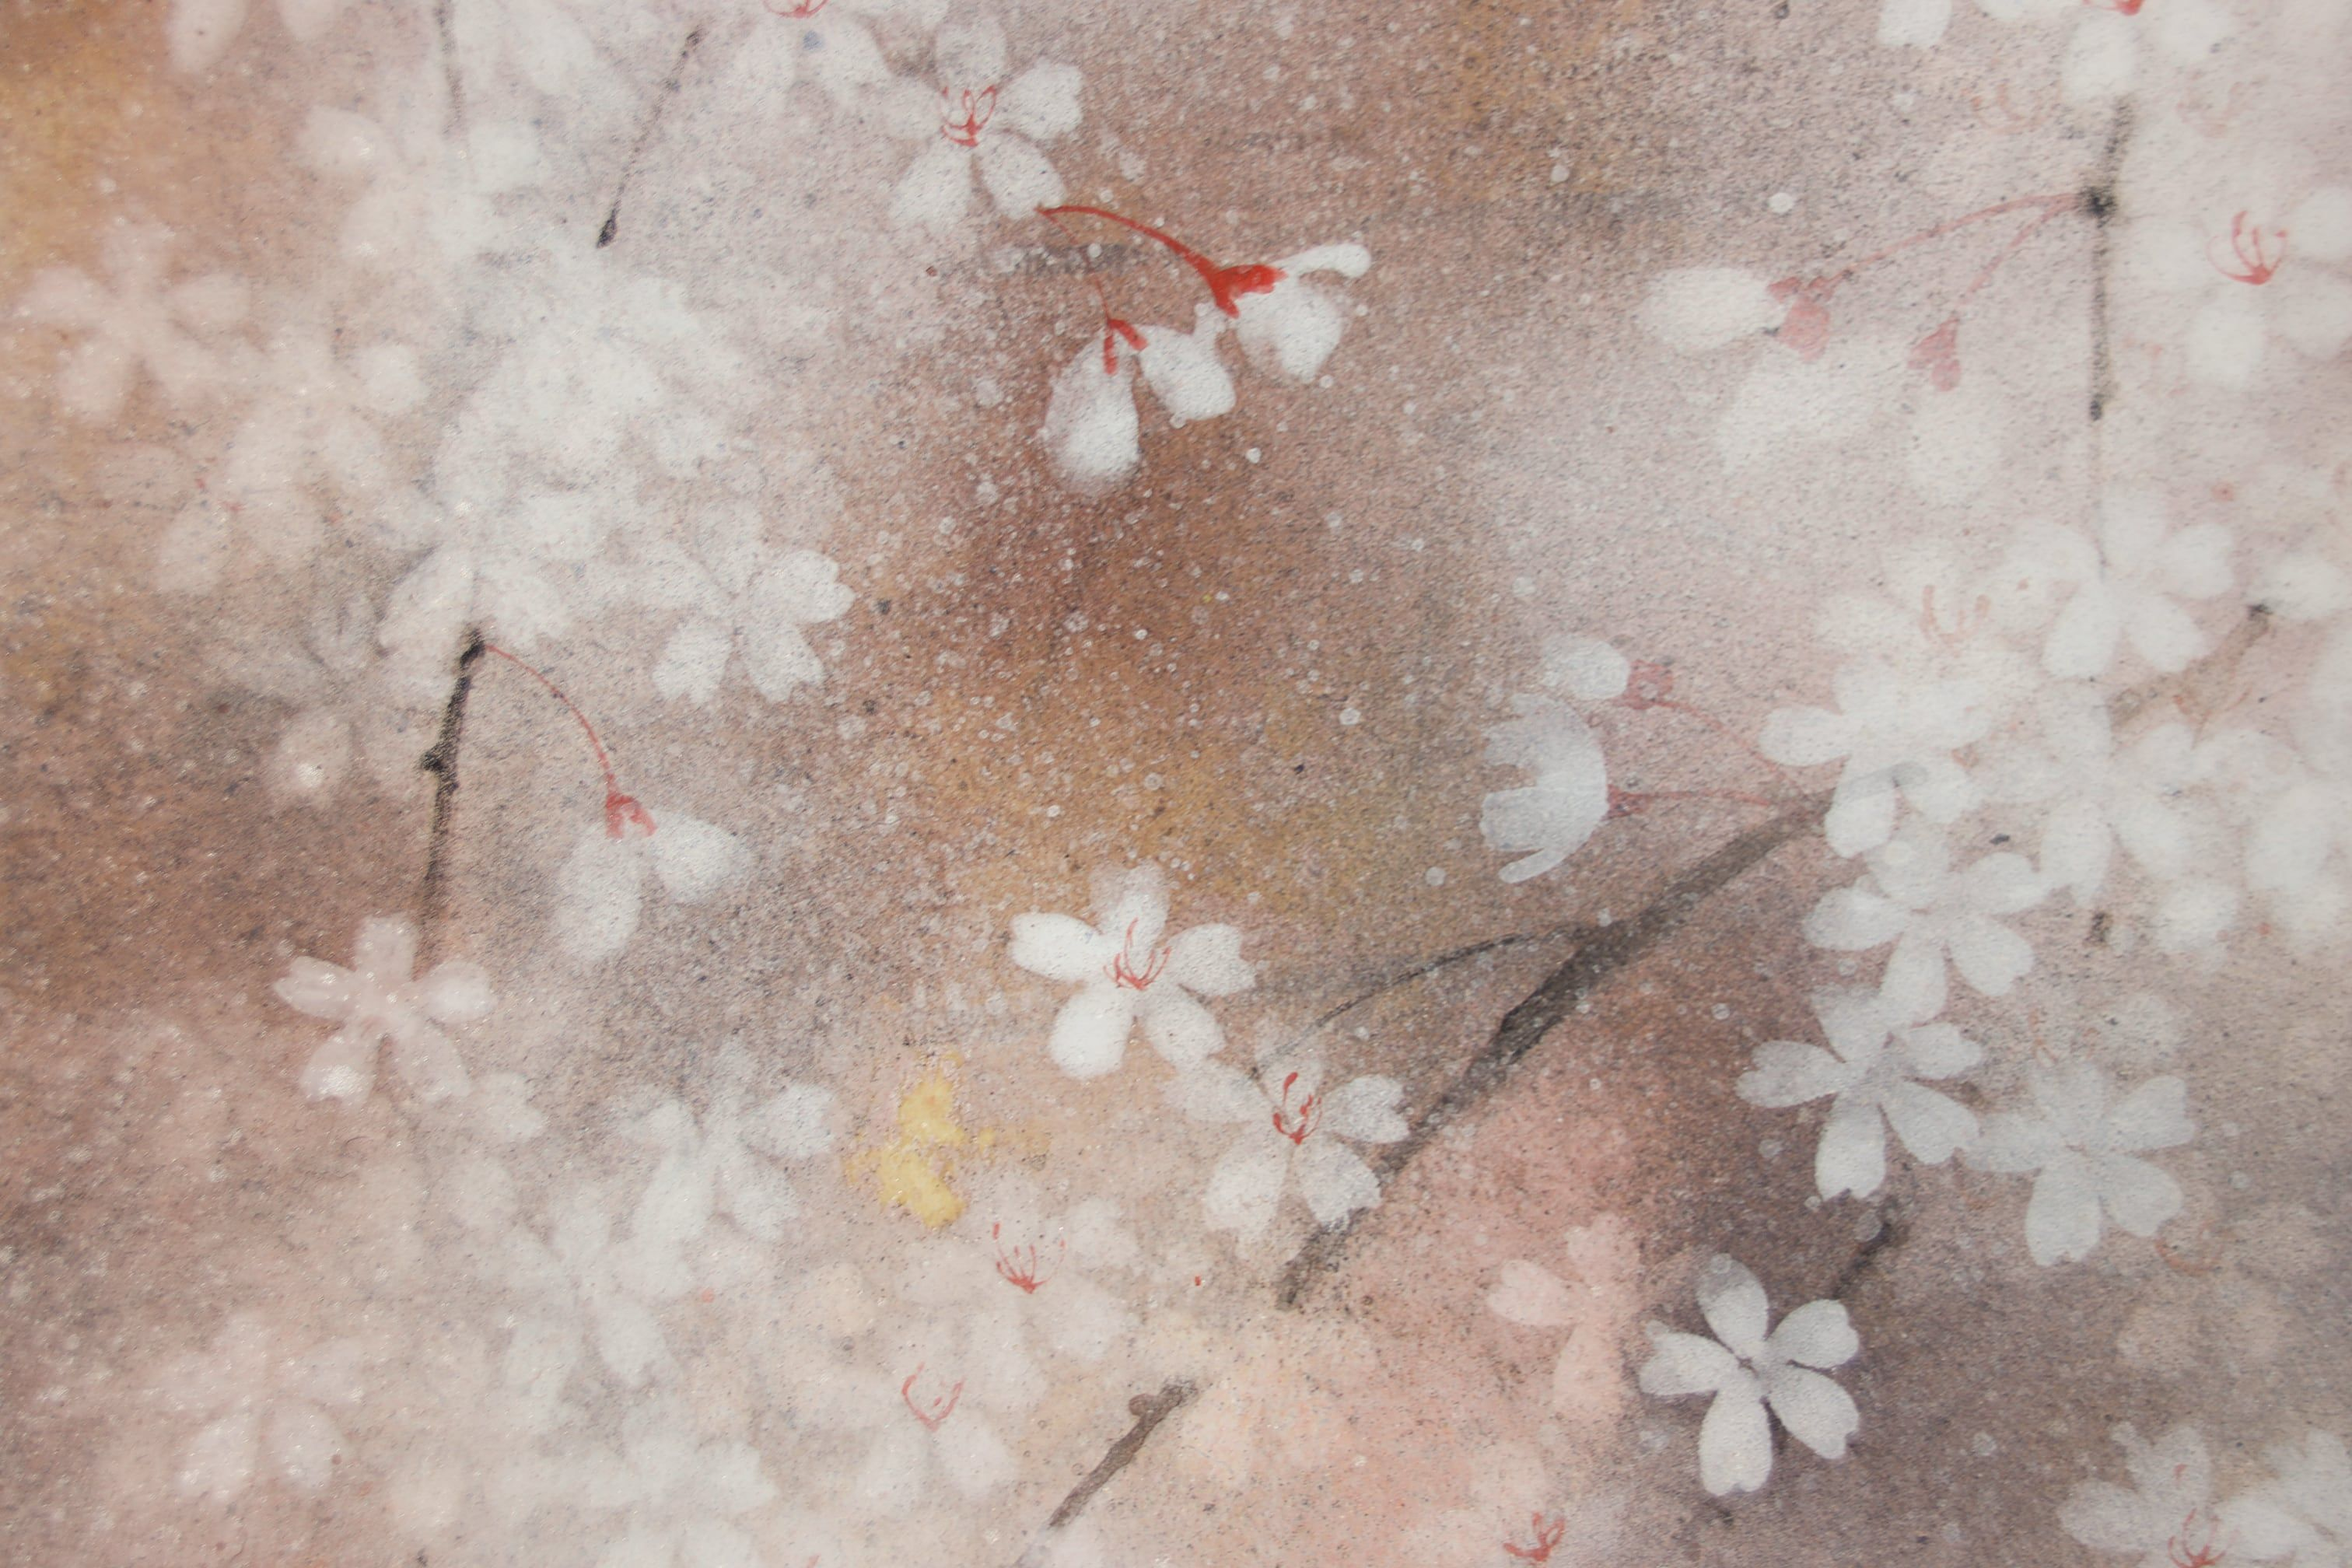 cerisier - Chen Yiching - Contemporary painting - detail 4